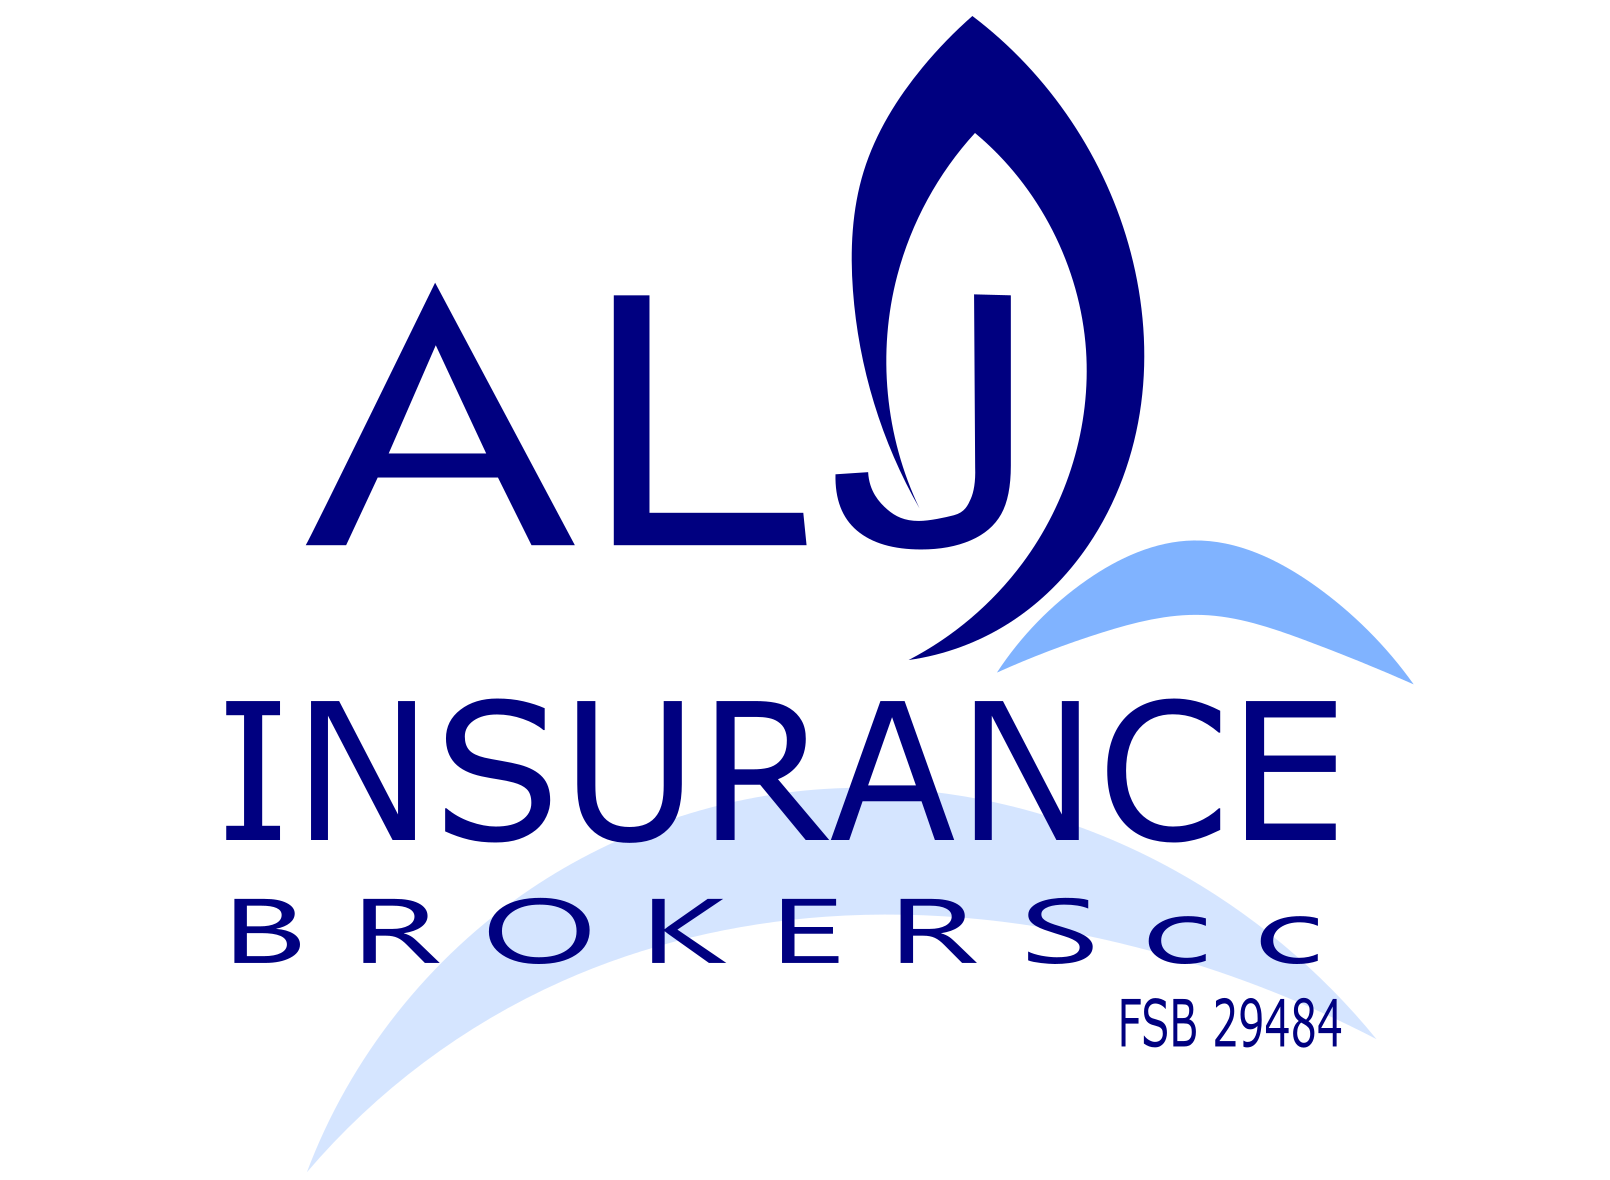 ALJ Insurance Brokers